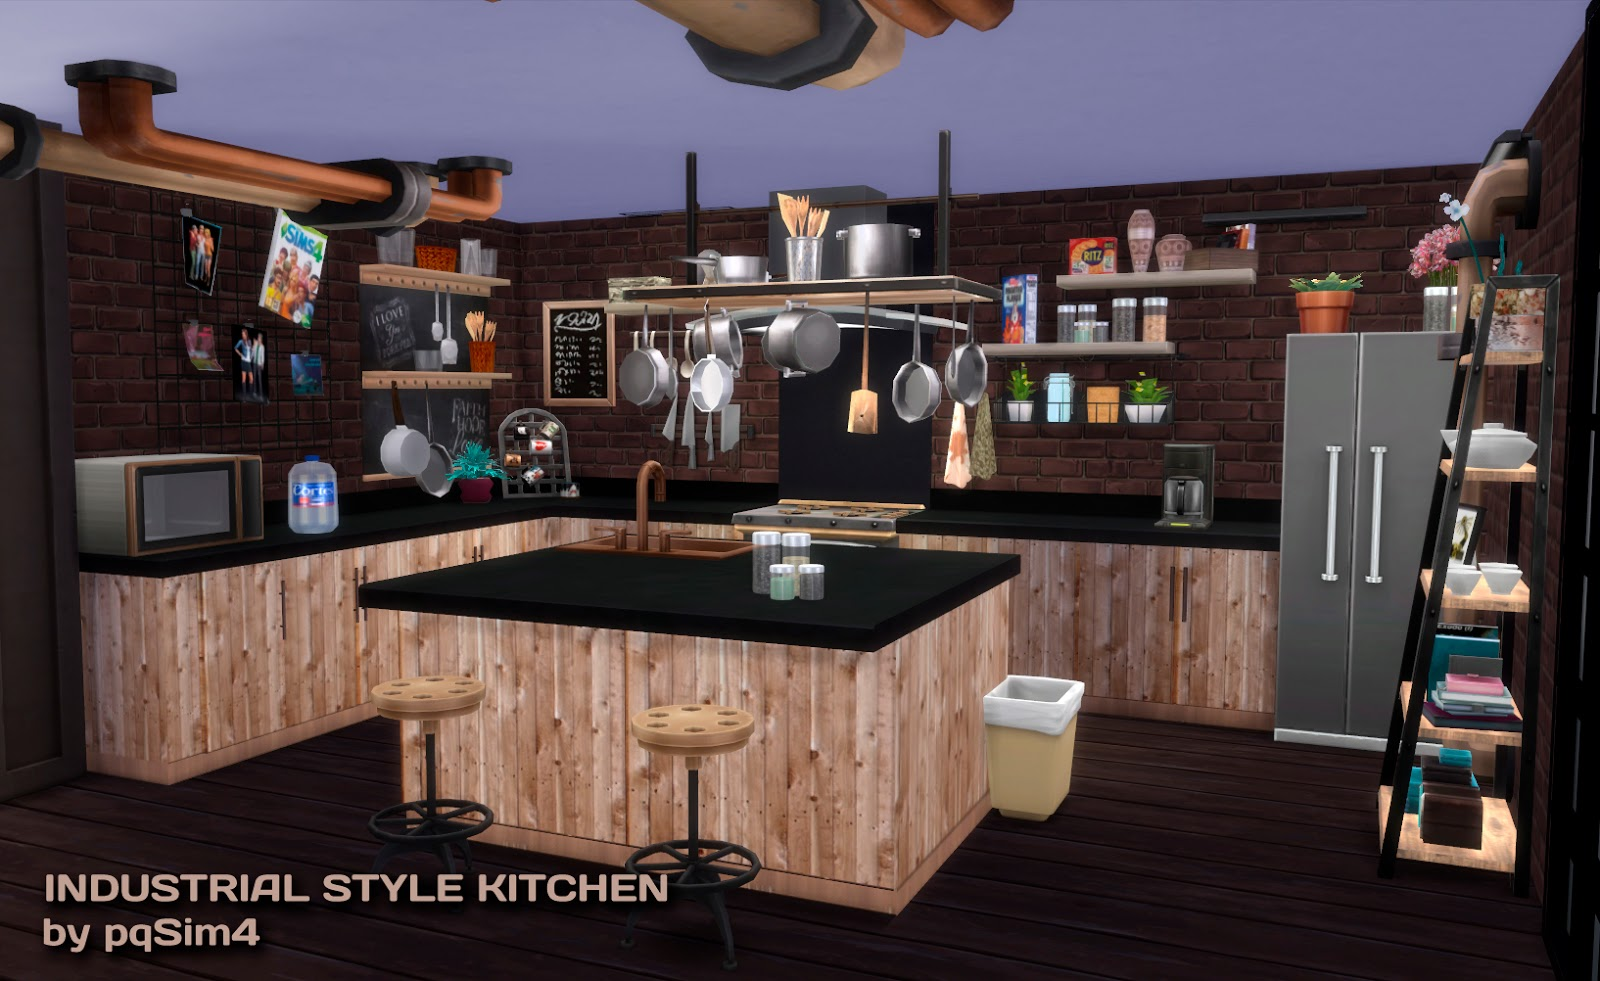 My sims 4 blog industrial kitchen set by pqsim4 for Sims 3 kitchen designs